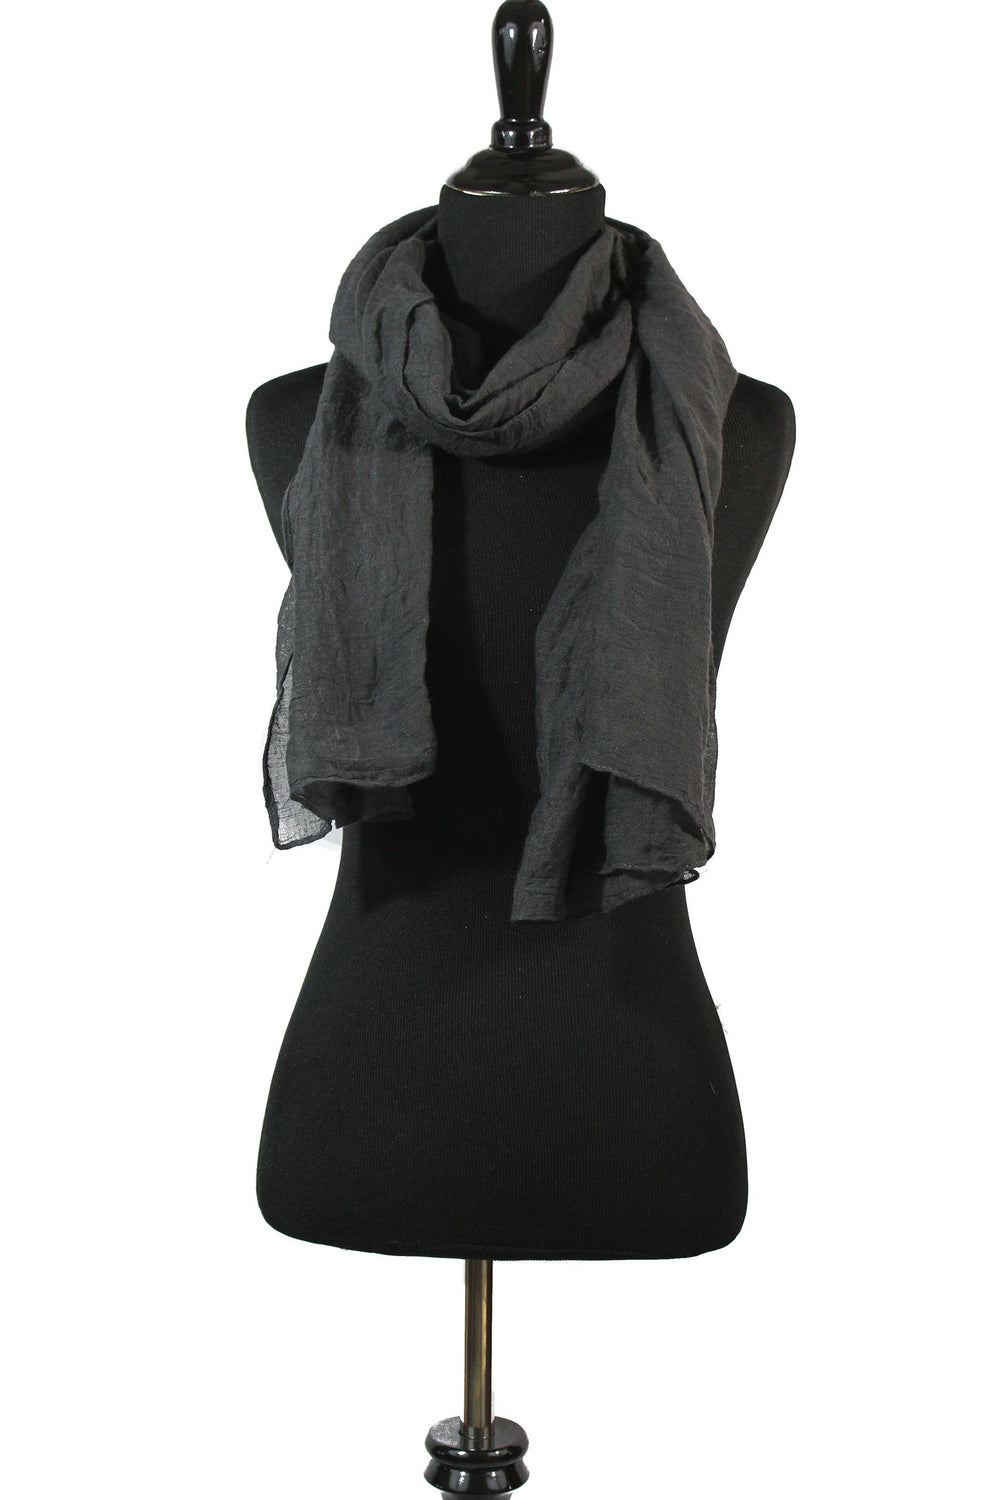 Crinkle Cotton Hijab - Dark Gray